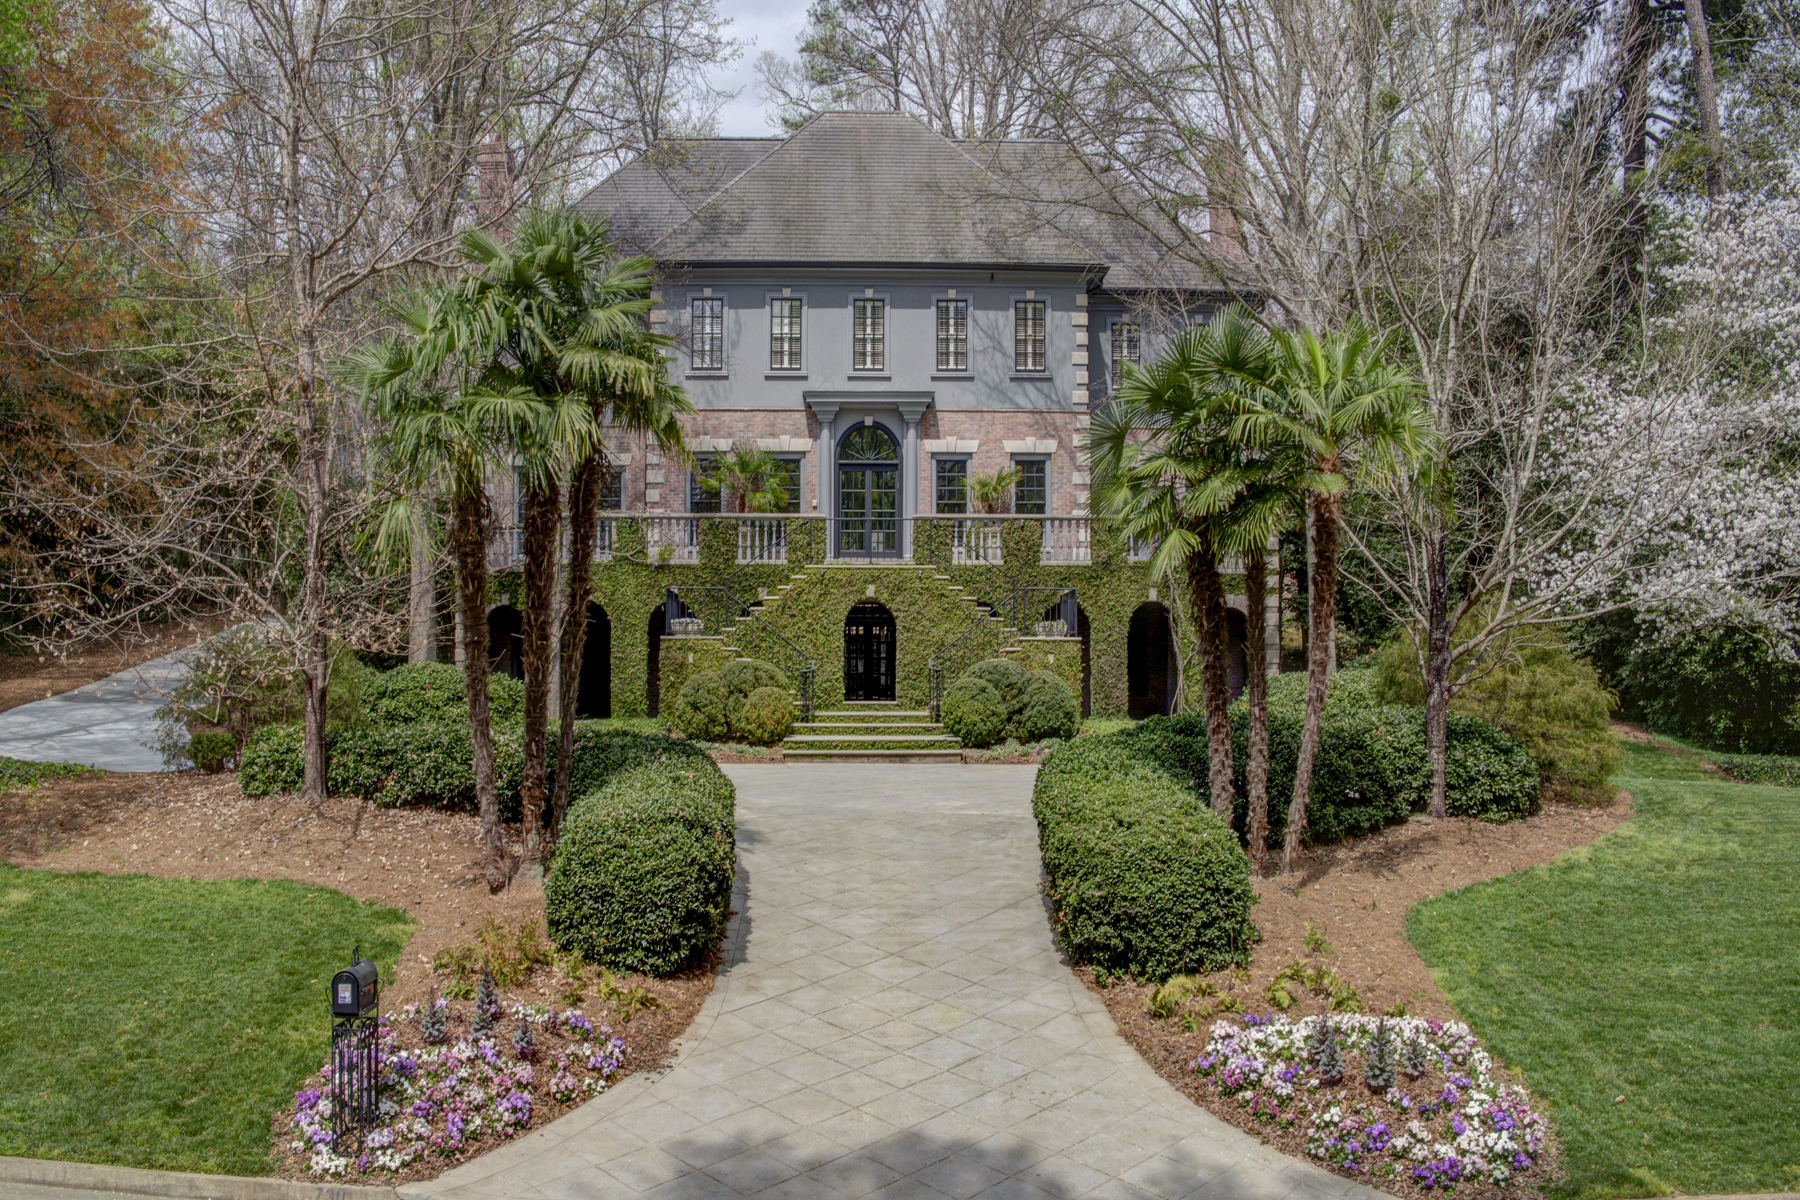 Single Family Home for Sale at Captivating Estate With Exquisite Detail Throughout 730 Conway Glen Drive NW Buckhead, Atlanta, Georgia, 30327 United States